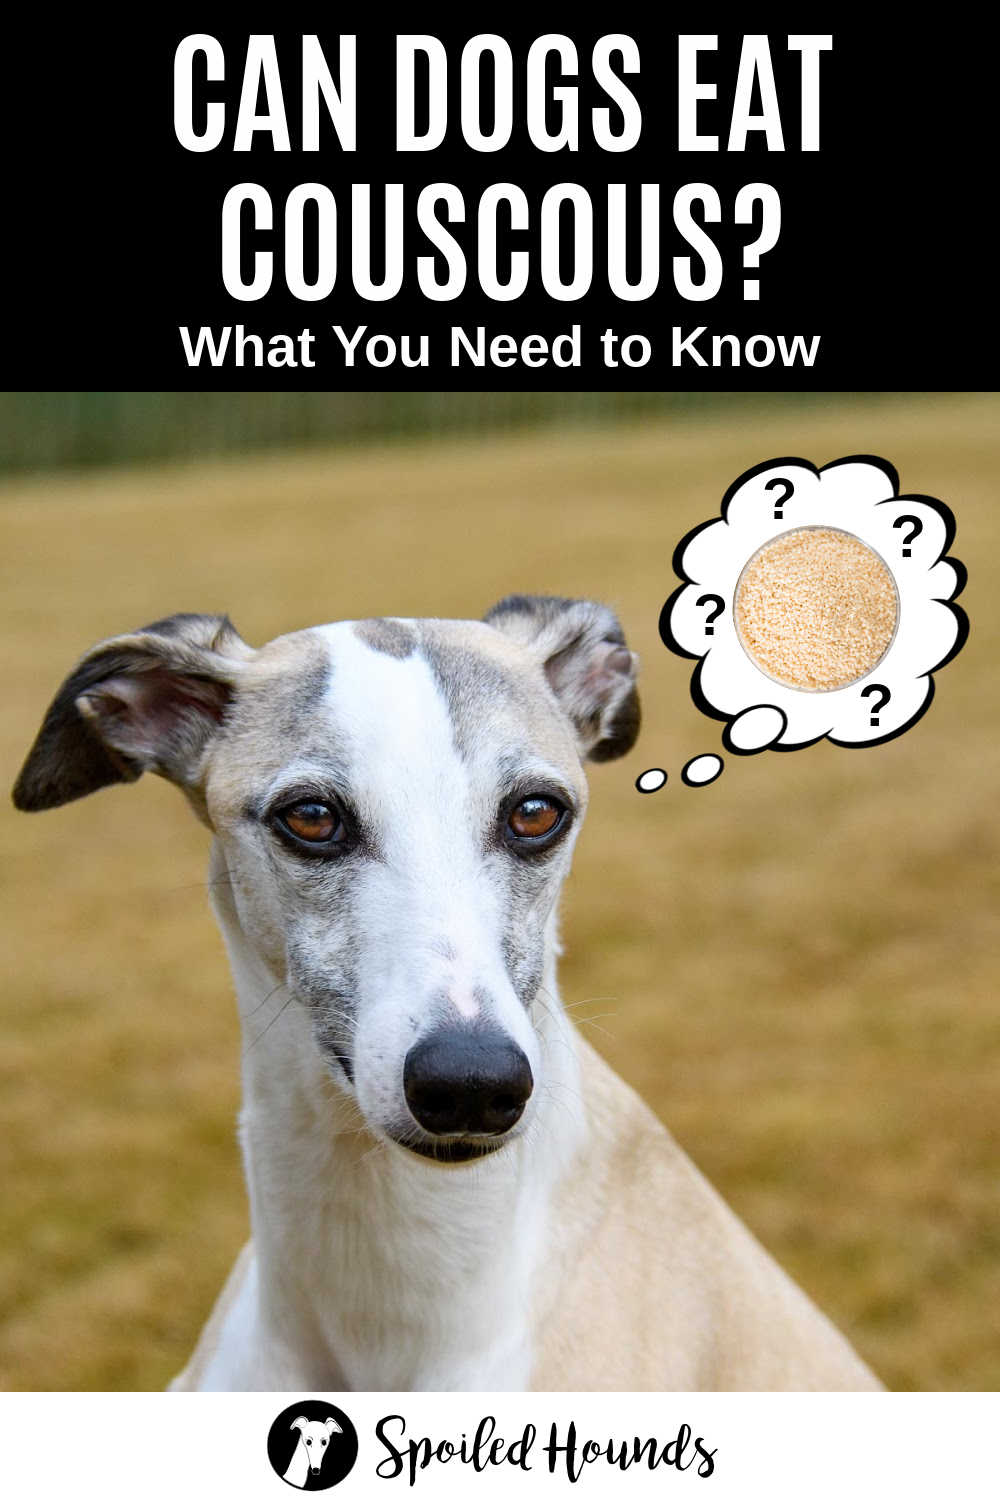 whippet dog wondering about couscous